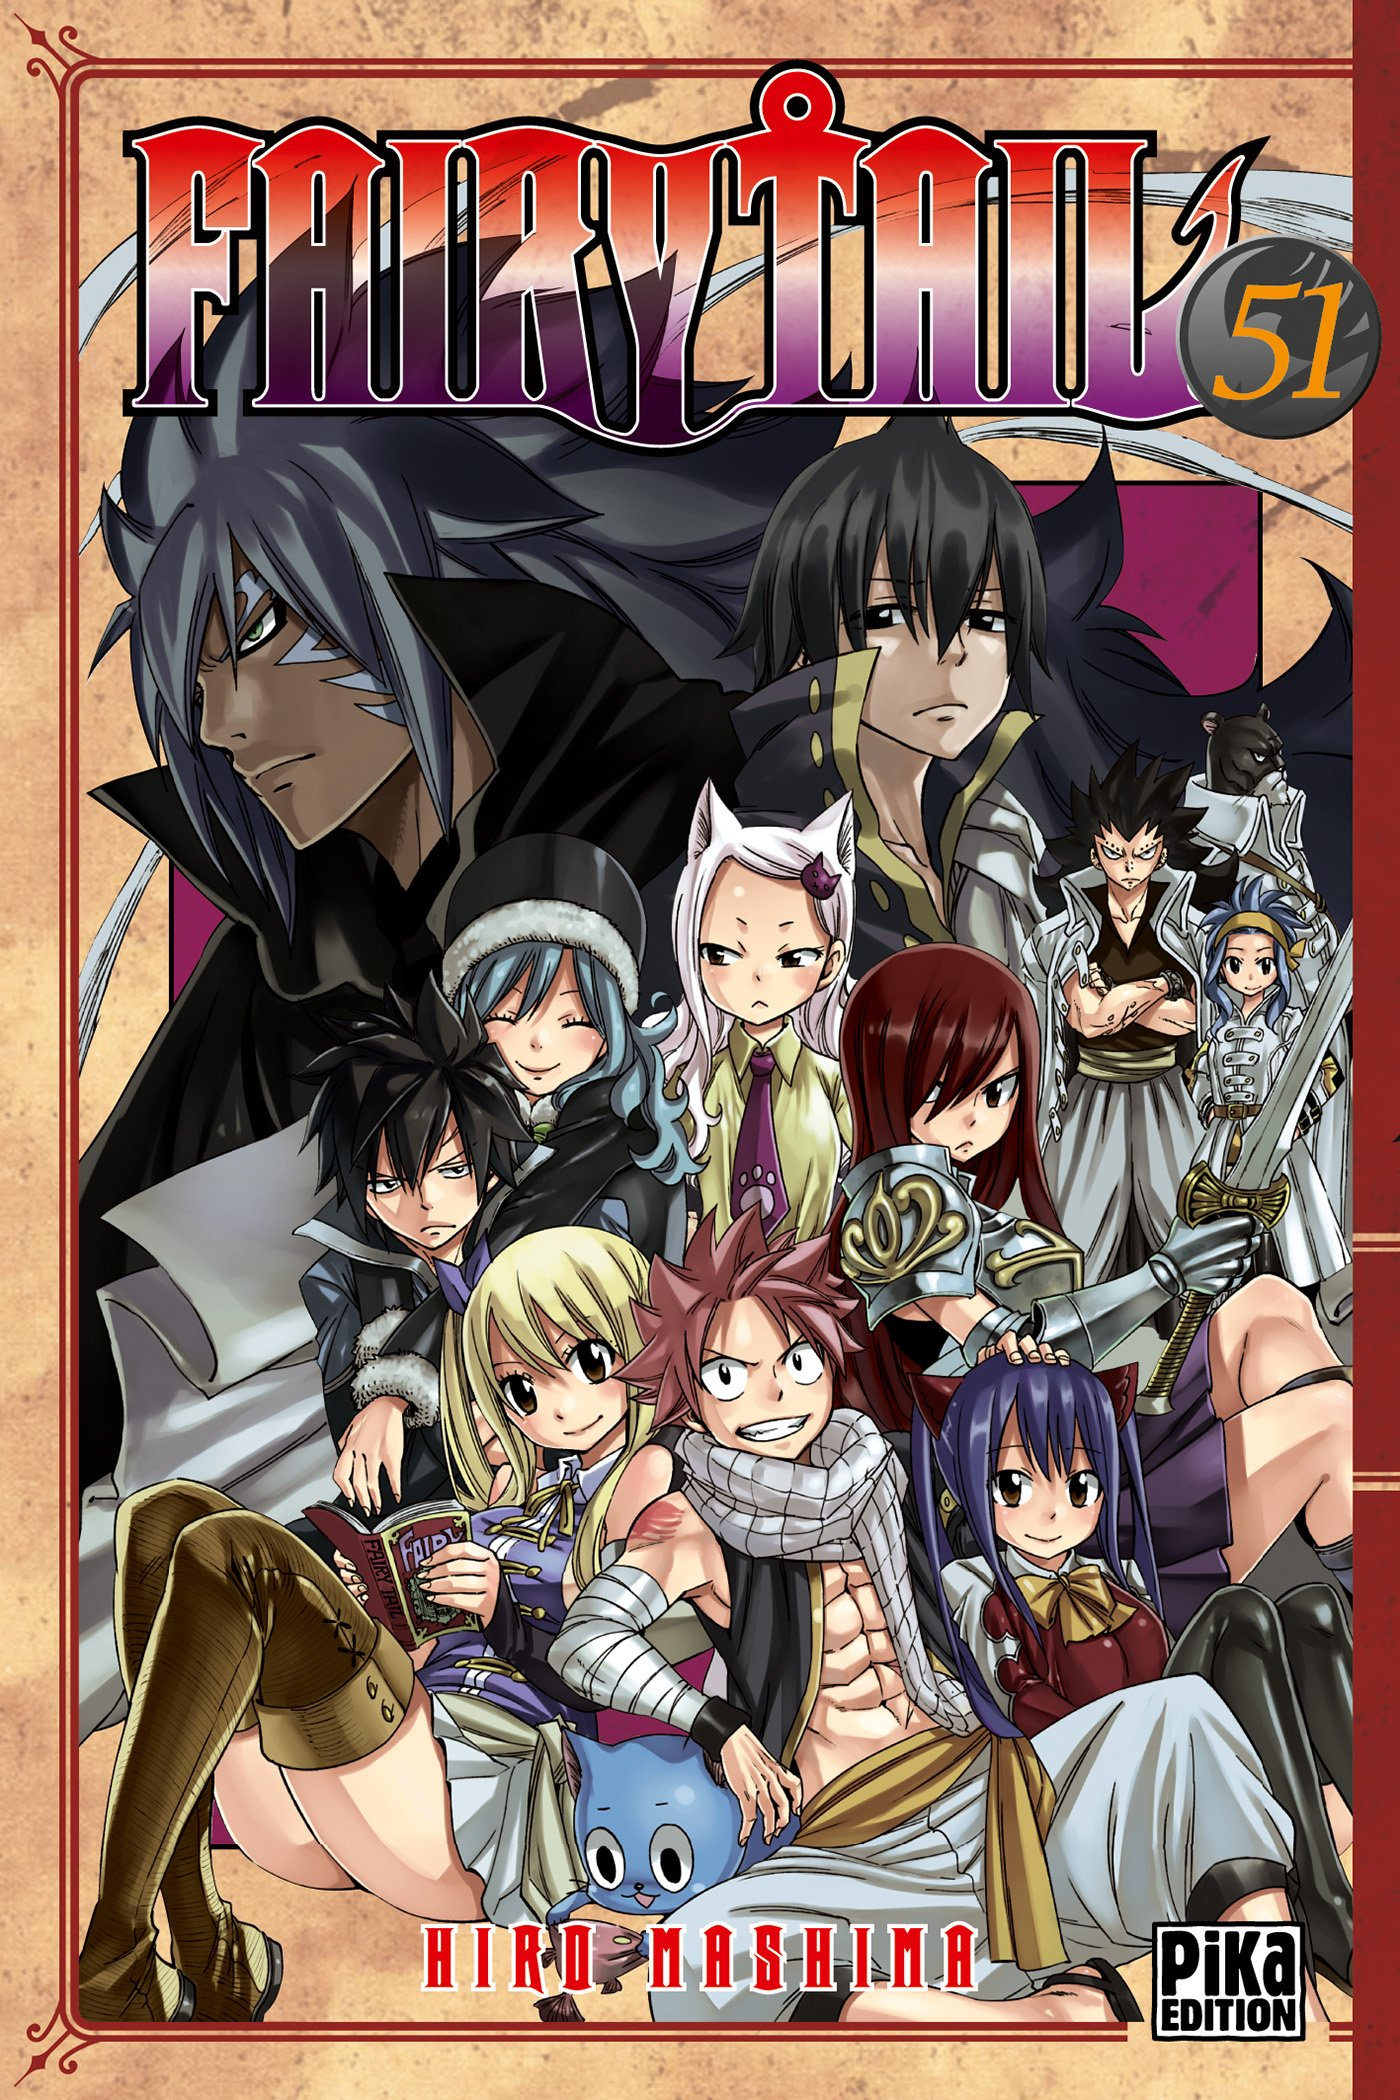 Fairy Tail T 51 Hiro Mashima 9782811630065 Books Amazon Ca